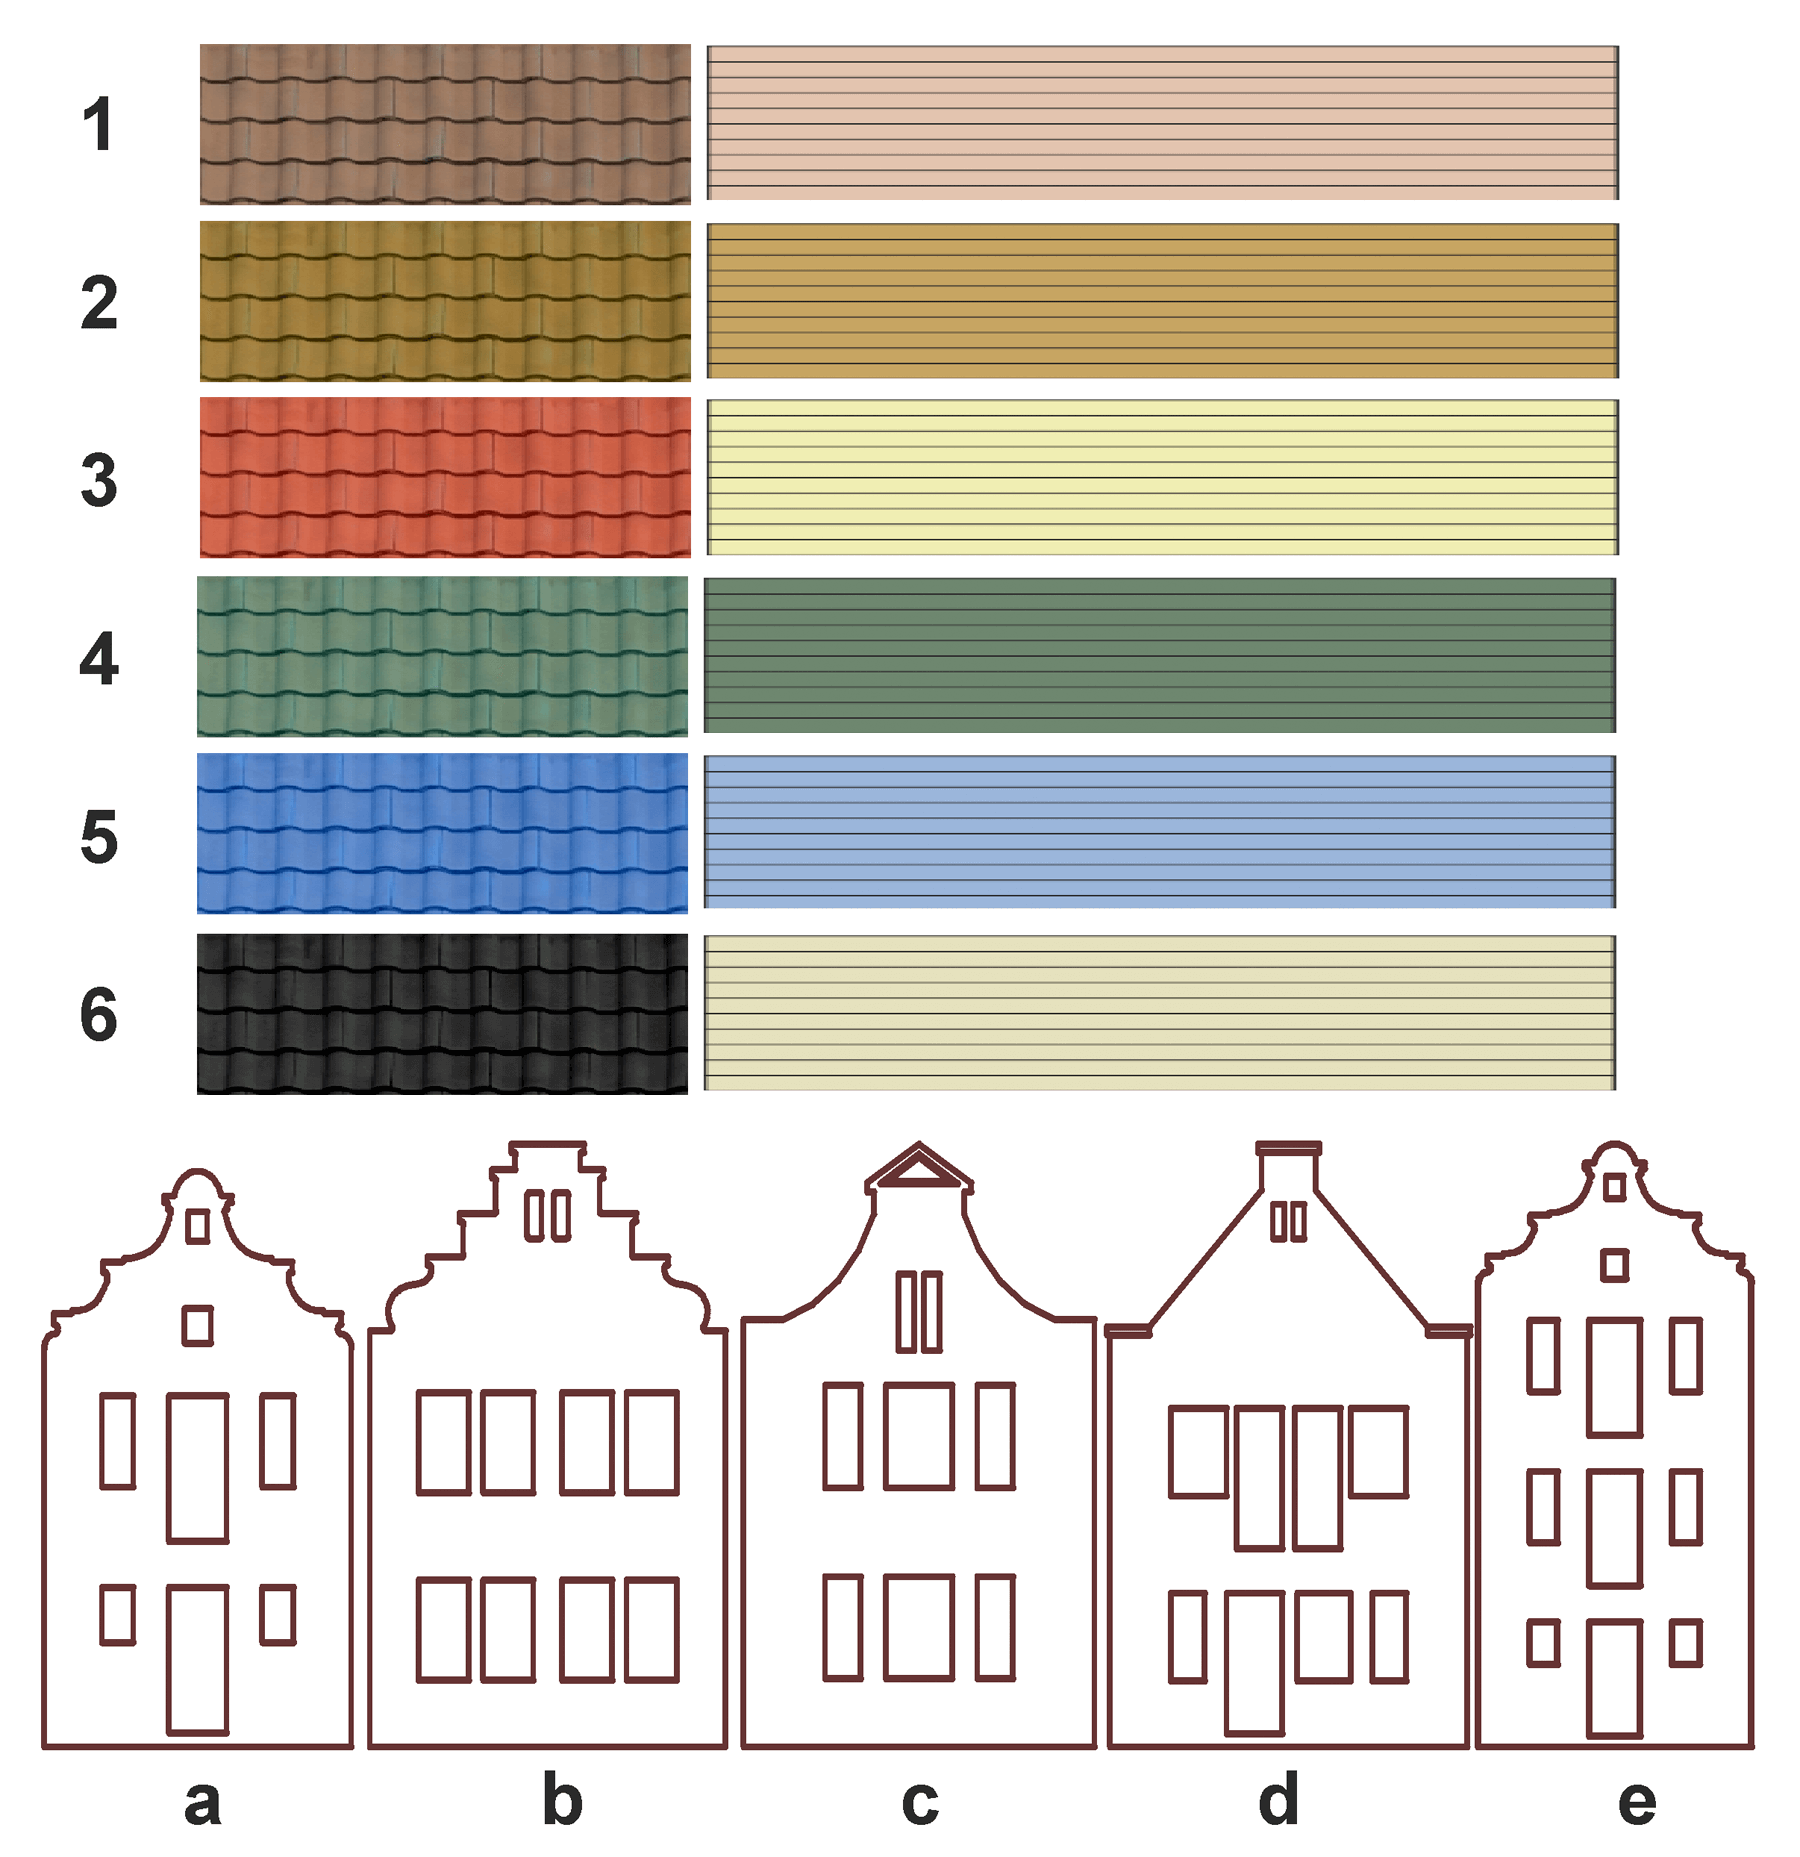 Versions of the forms and colors of the roof of the house